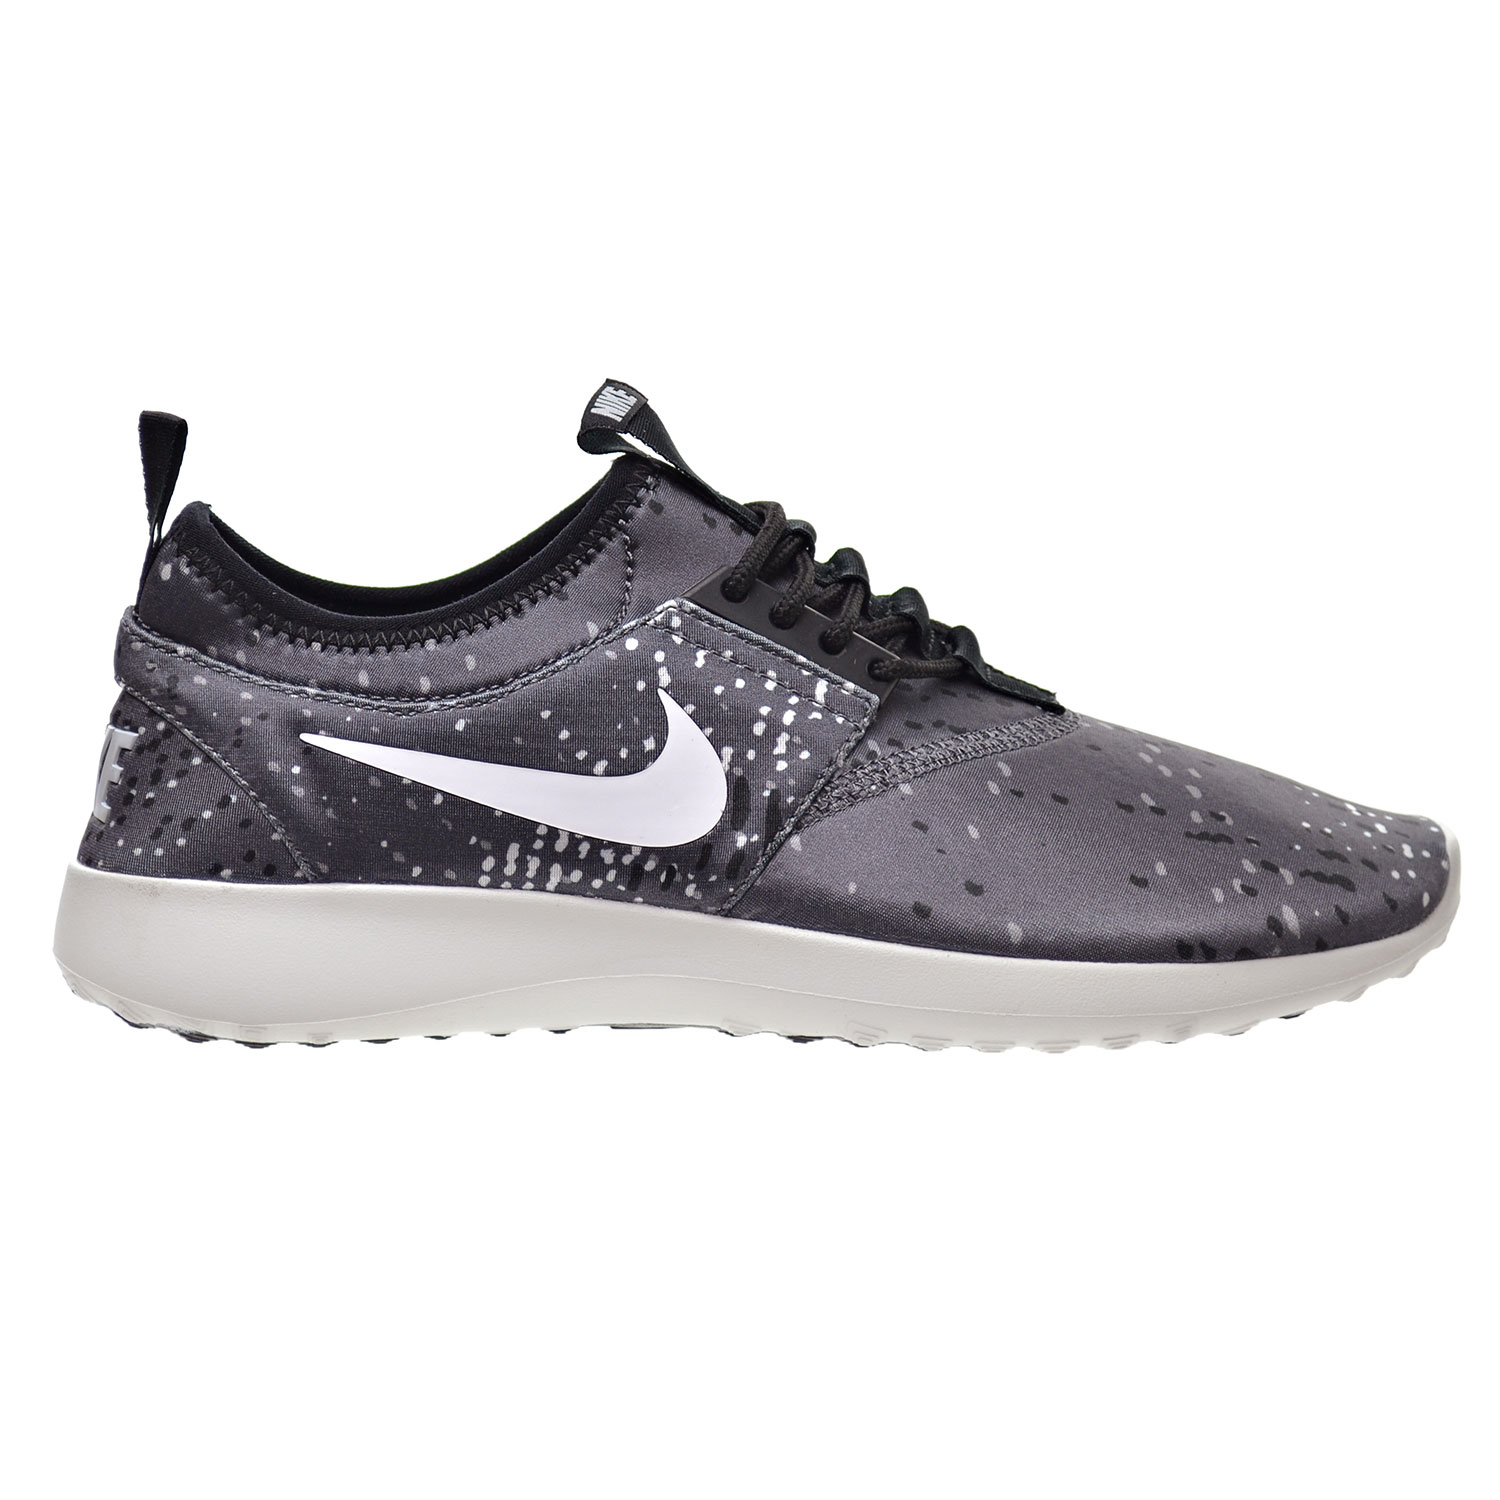 brand new d8303 32f0d Details about Nike Juvenate Print Women s Shoes Dark Grey White Black Pure  Platinum 749552-003